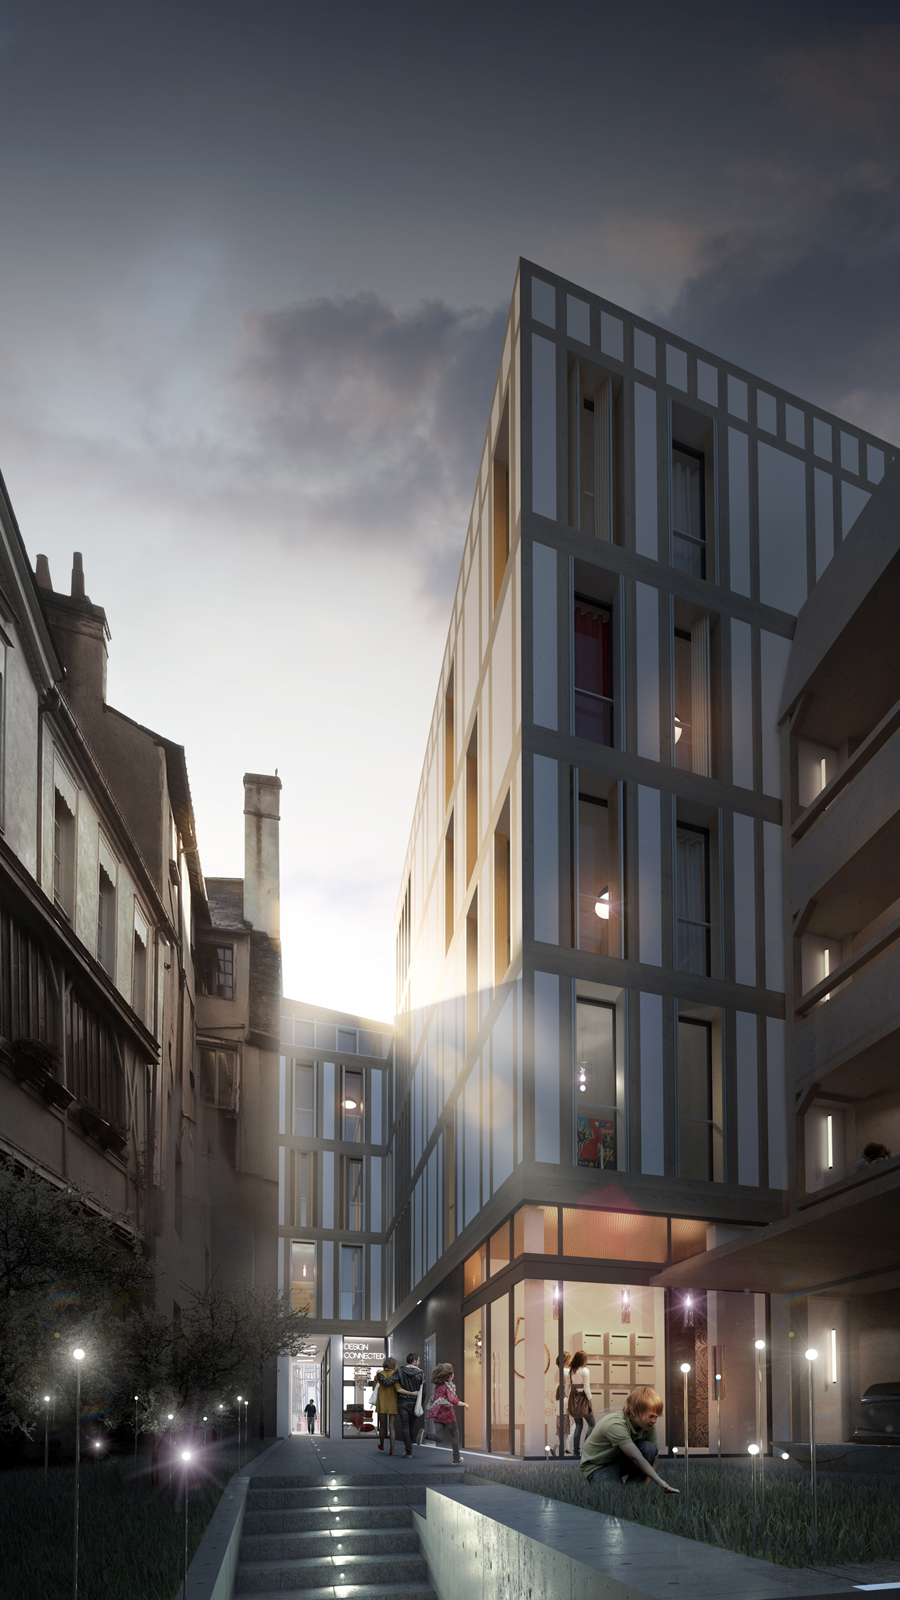 Housing commercial elsaa architects rennes fr for Architecture rennes